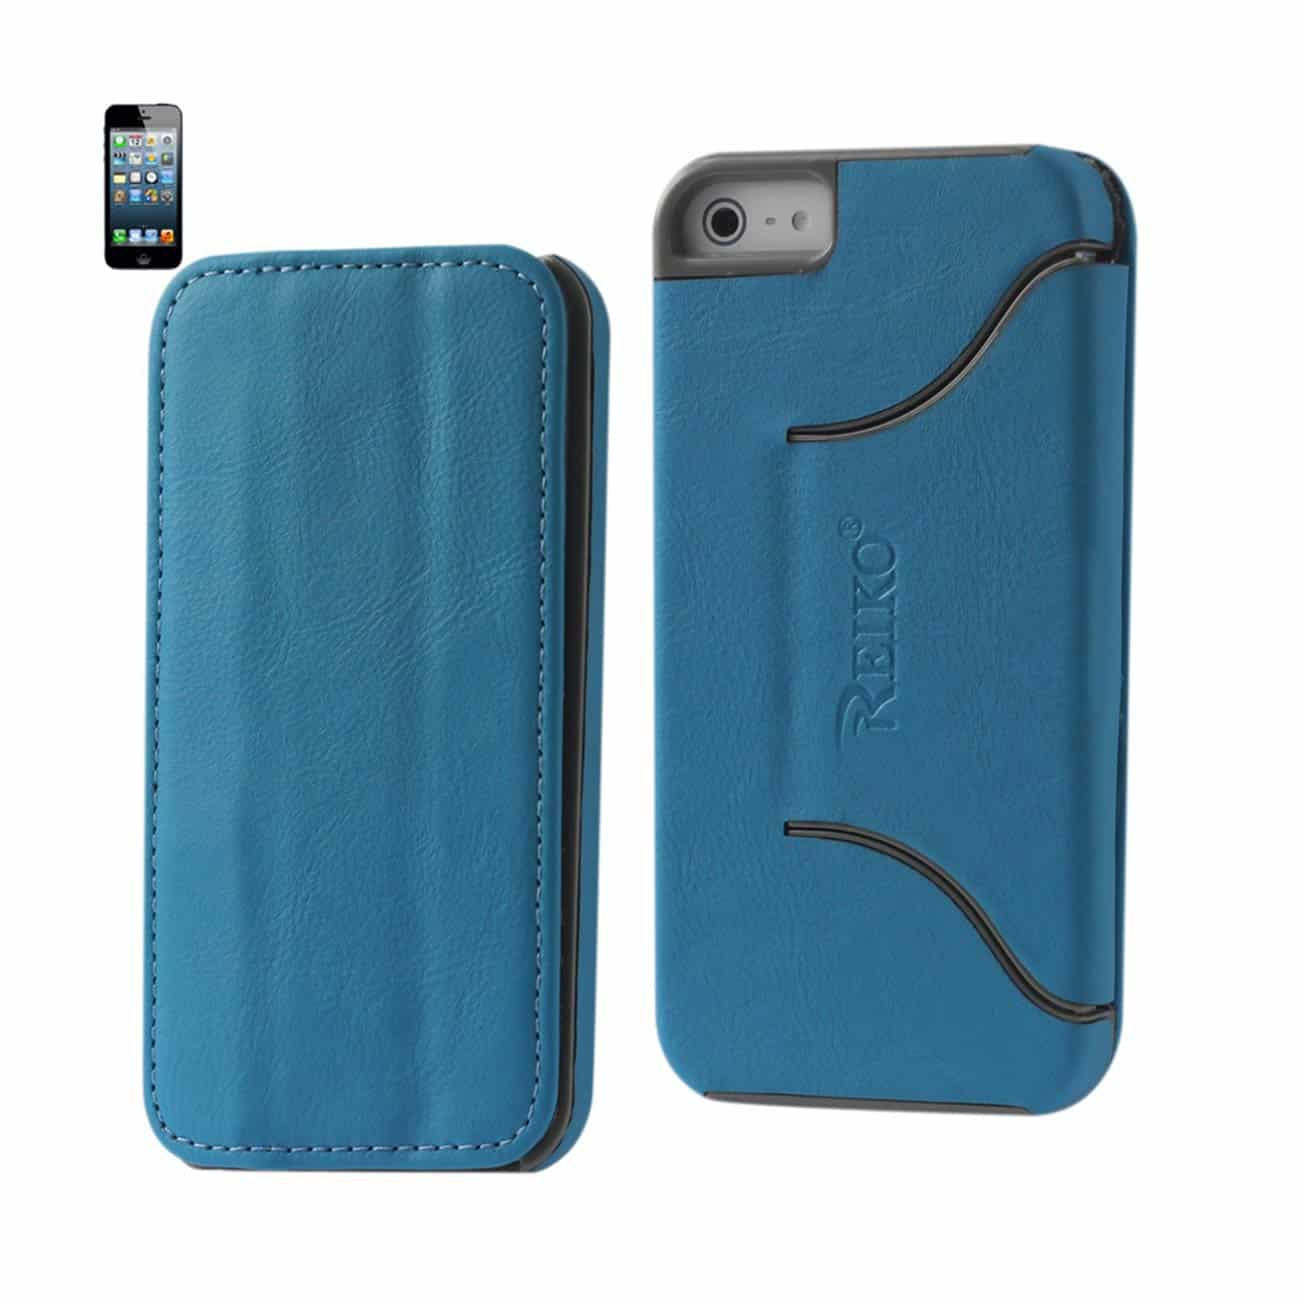 IPHONE SE/ 5S/ 5 FLIP FOLIO CASE WITH STAND IN BLUE